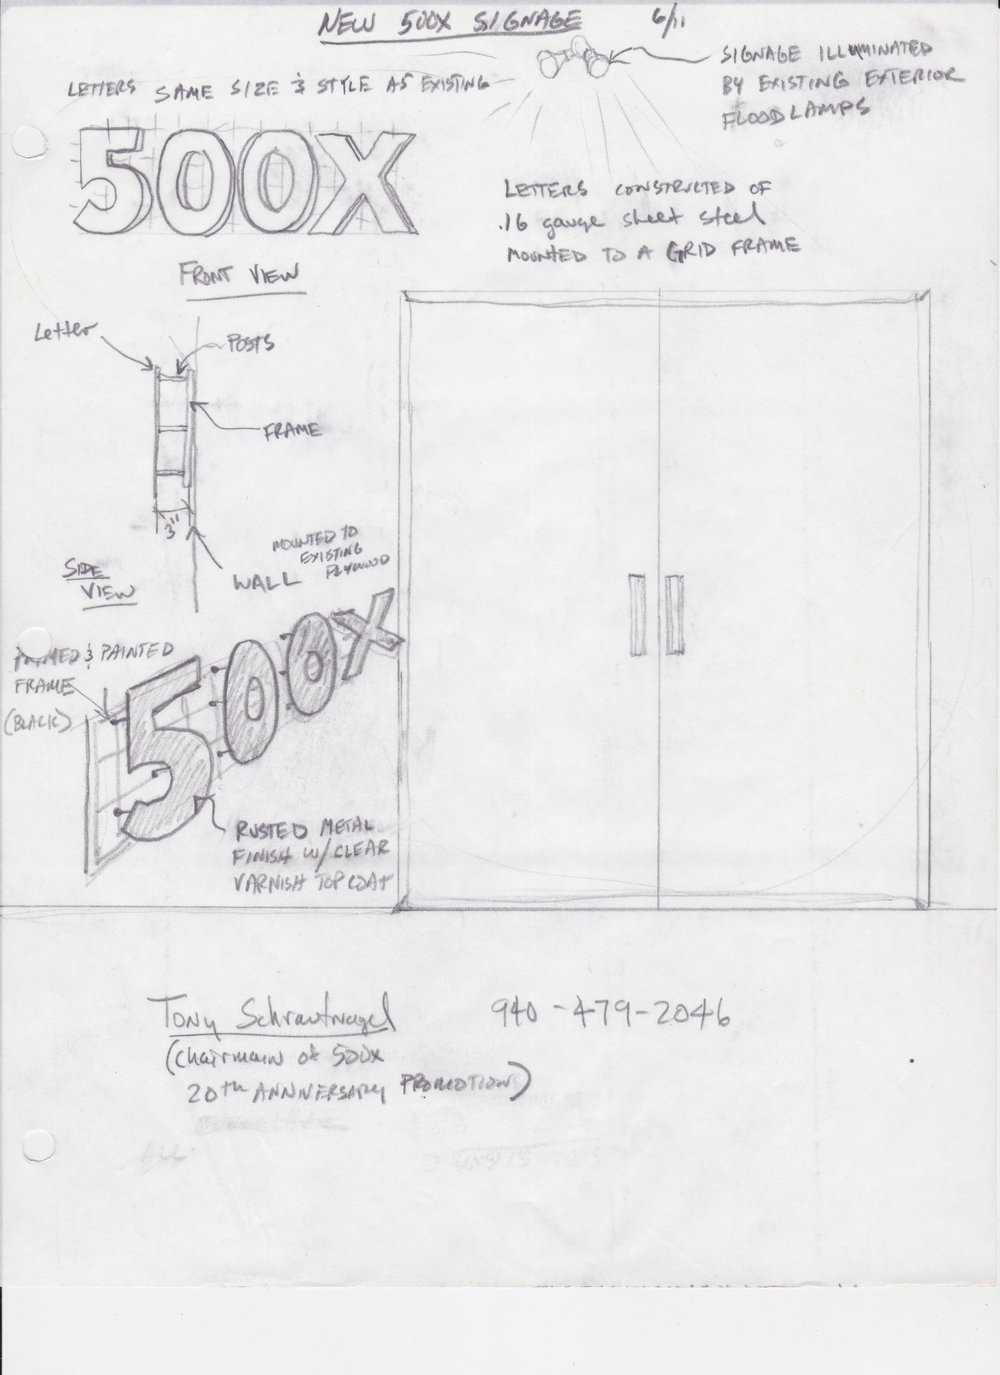 Drawing of the design for the sign Tony made in celebration of the 20th anniversary.